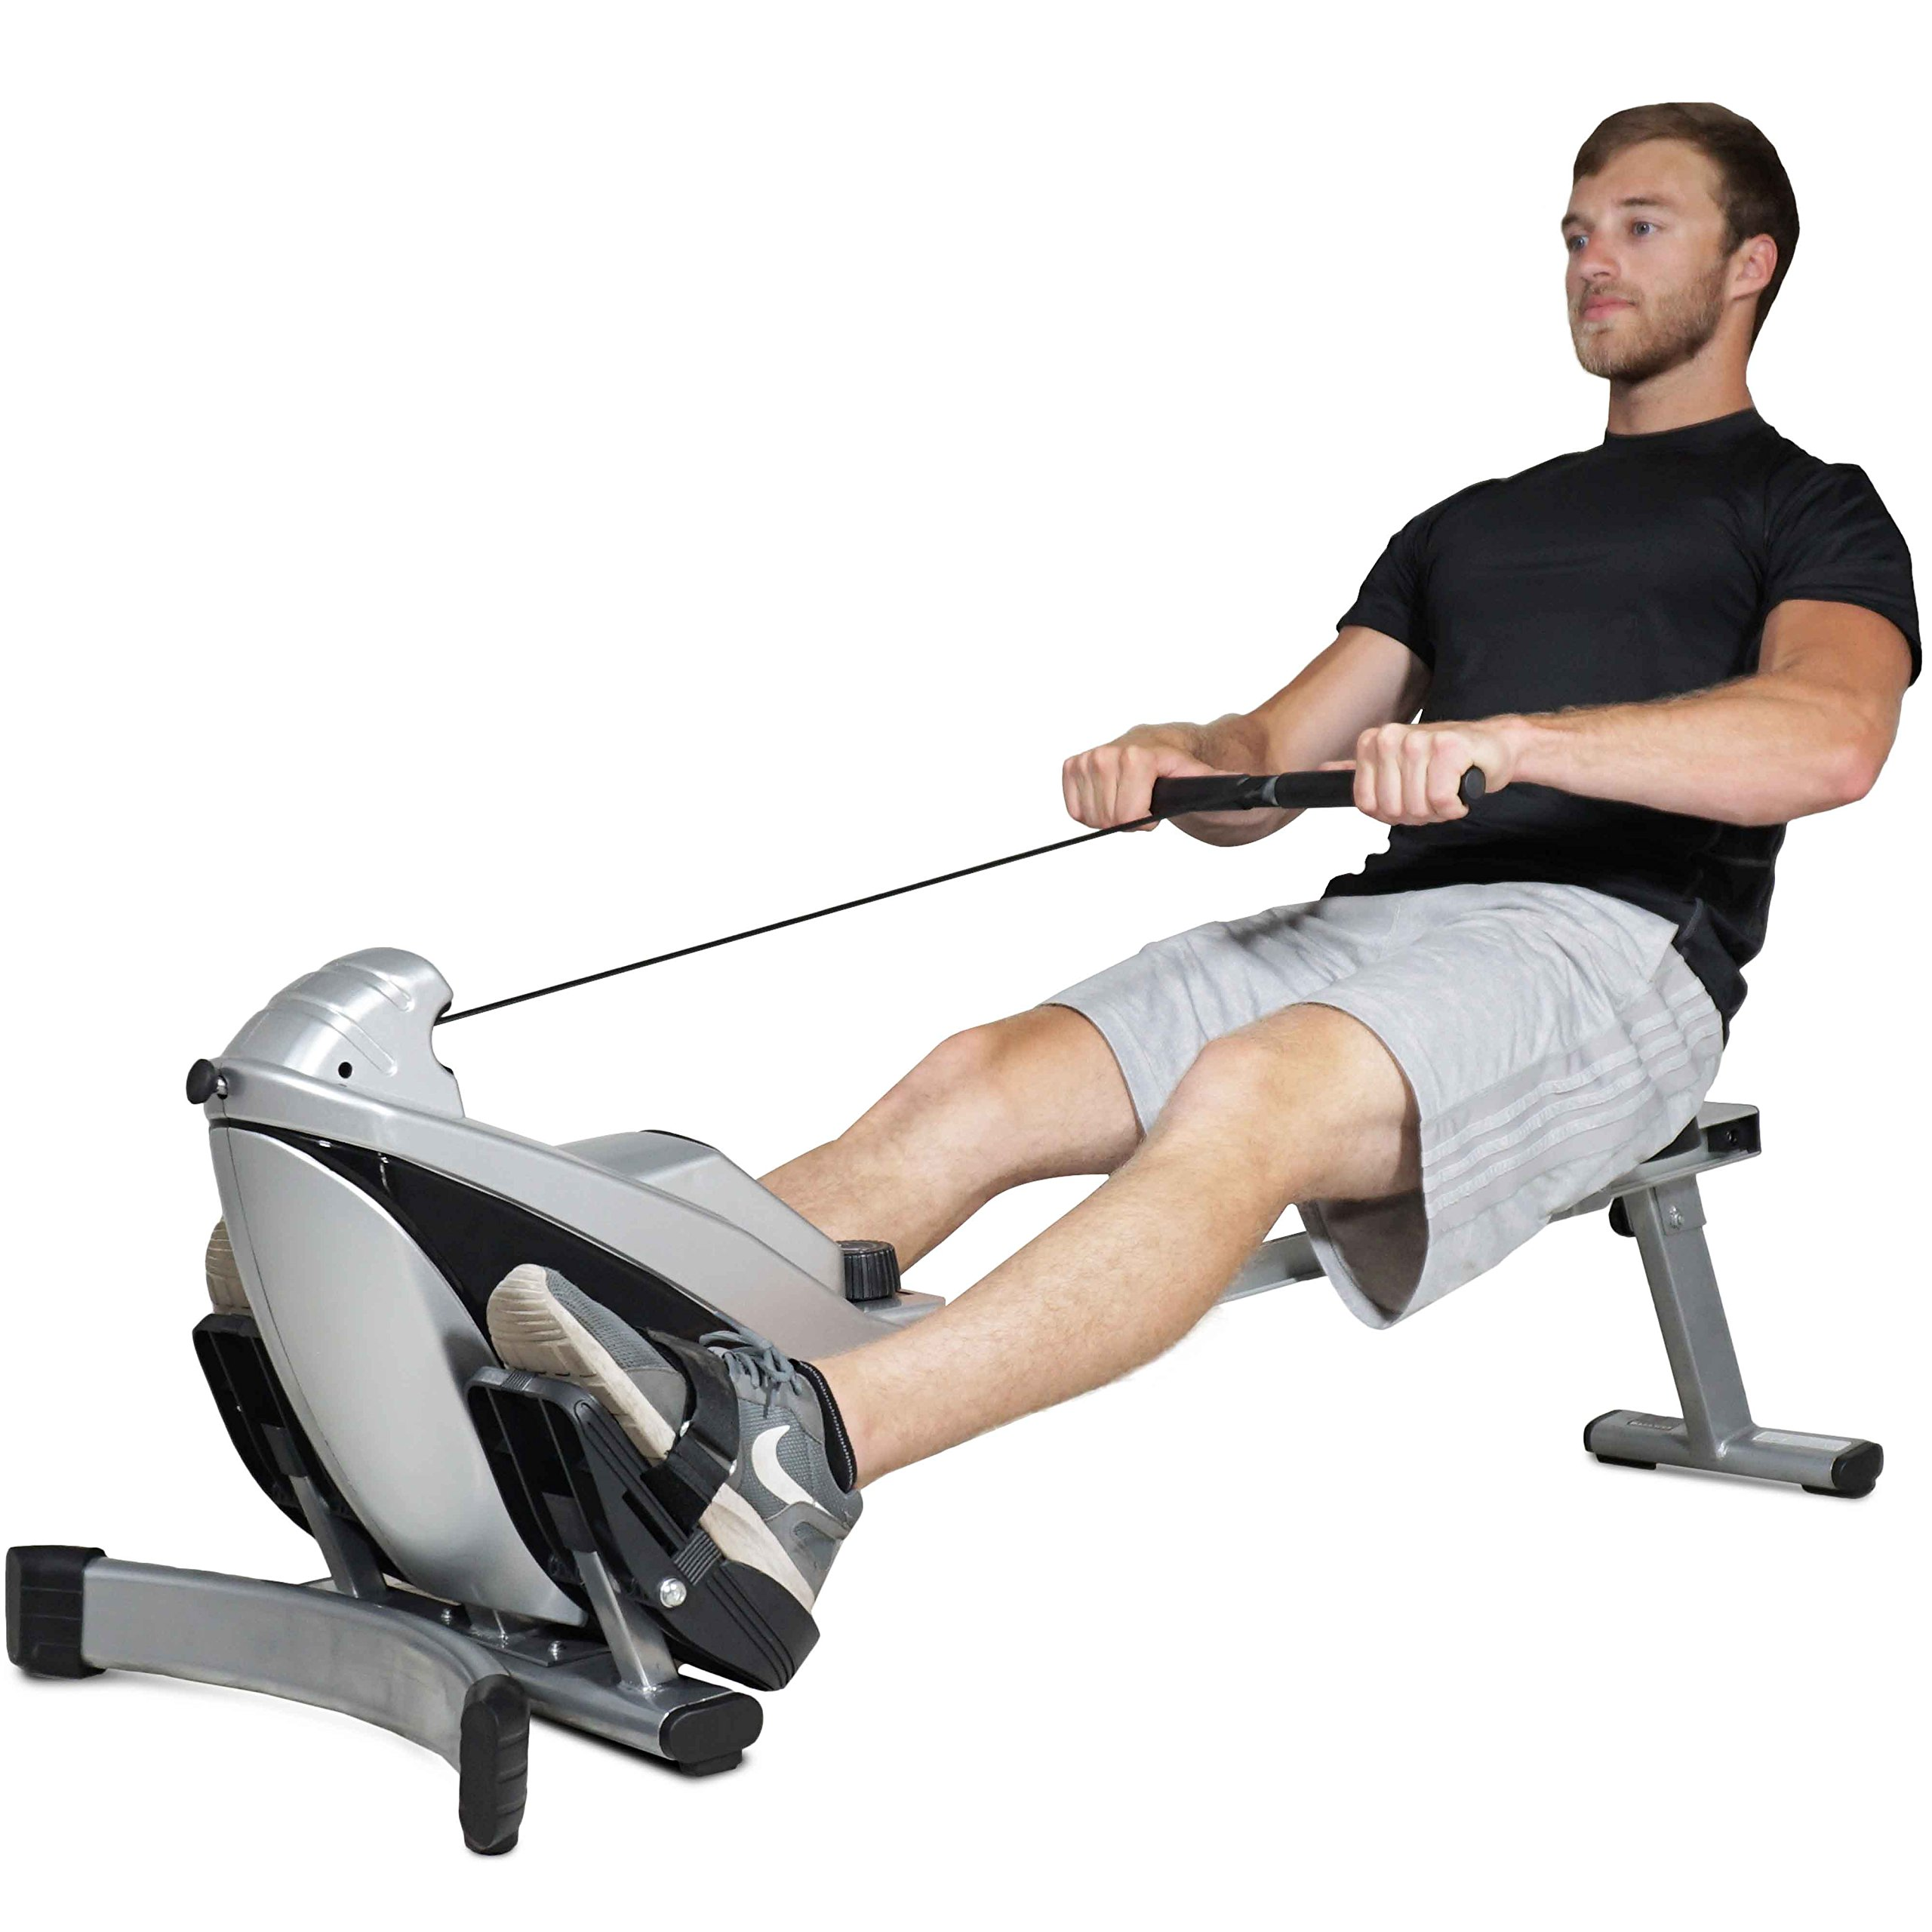 Titan Adjustable Magnetic Resistance Rowing Machine w/LCD Screen Rower Folds Up & Saves Space by TITAN FITNESS (Image #8)